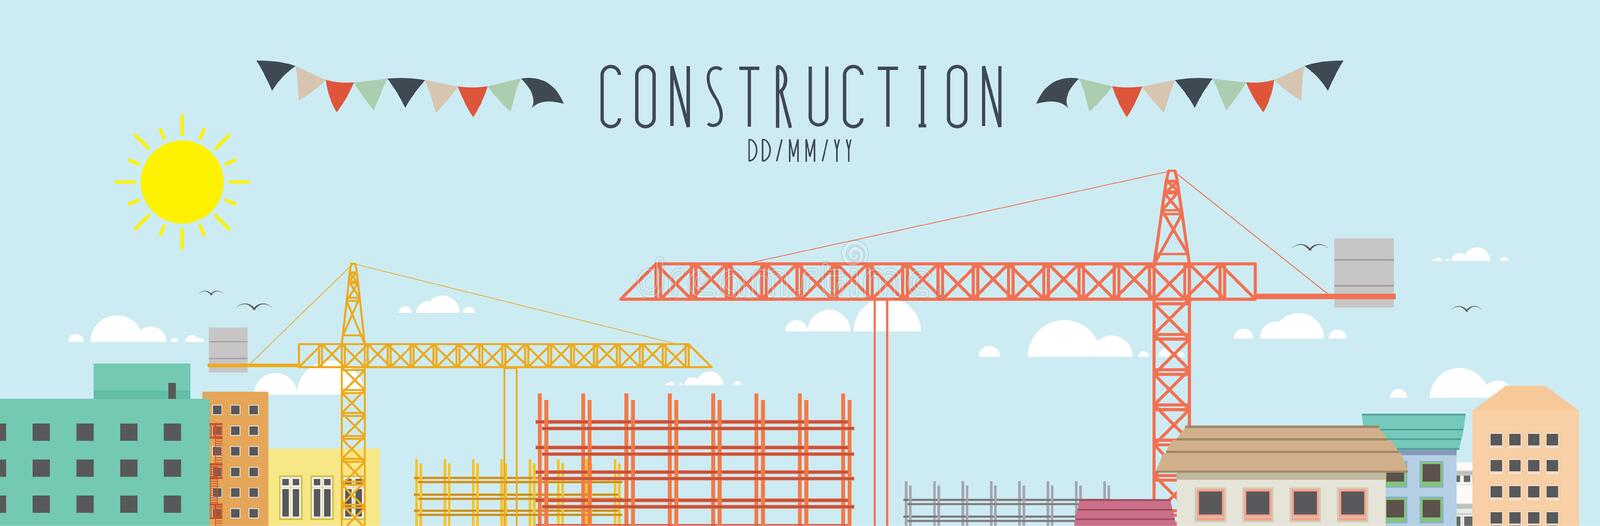 Construction site in the city. Vector illustration construction site in the city stock illustration